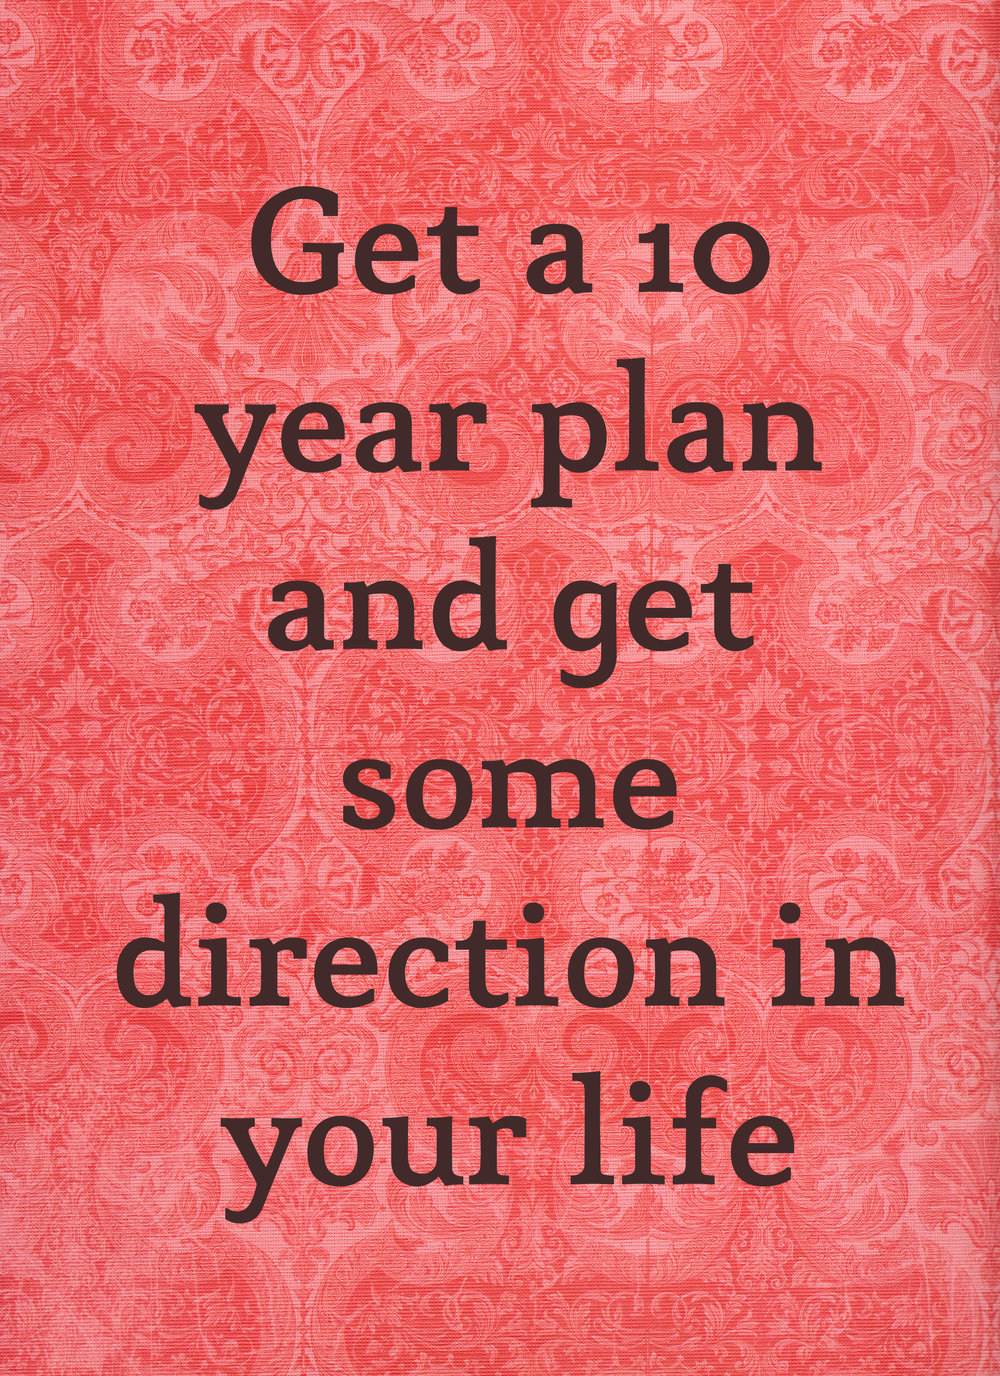 get a 10 year plan, find direction, find purpose, ground yourself, get a vision, life purpose,